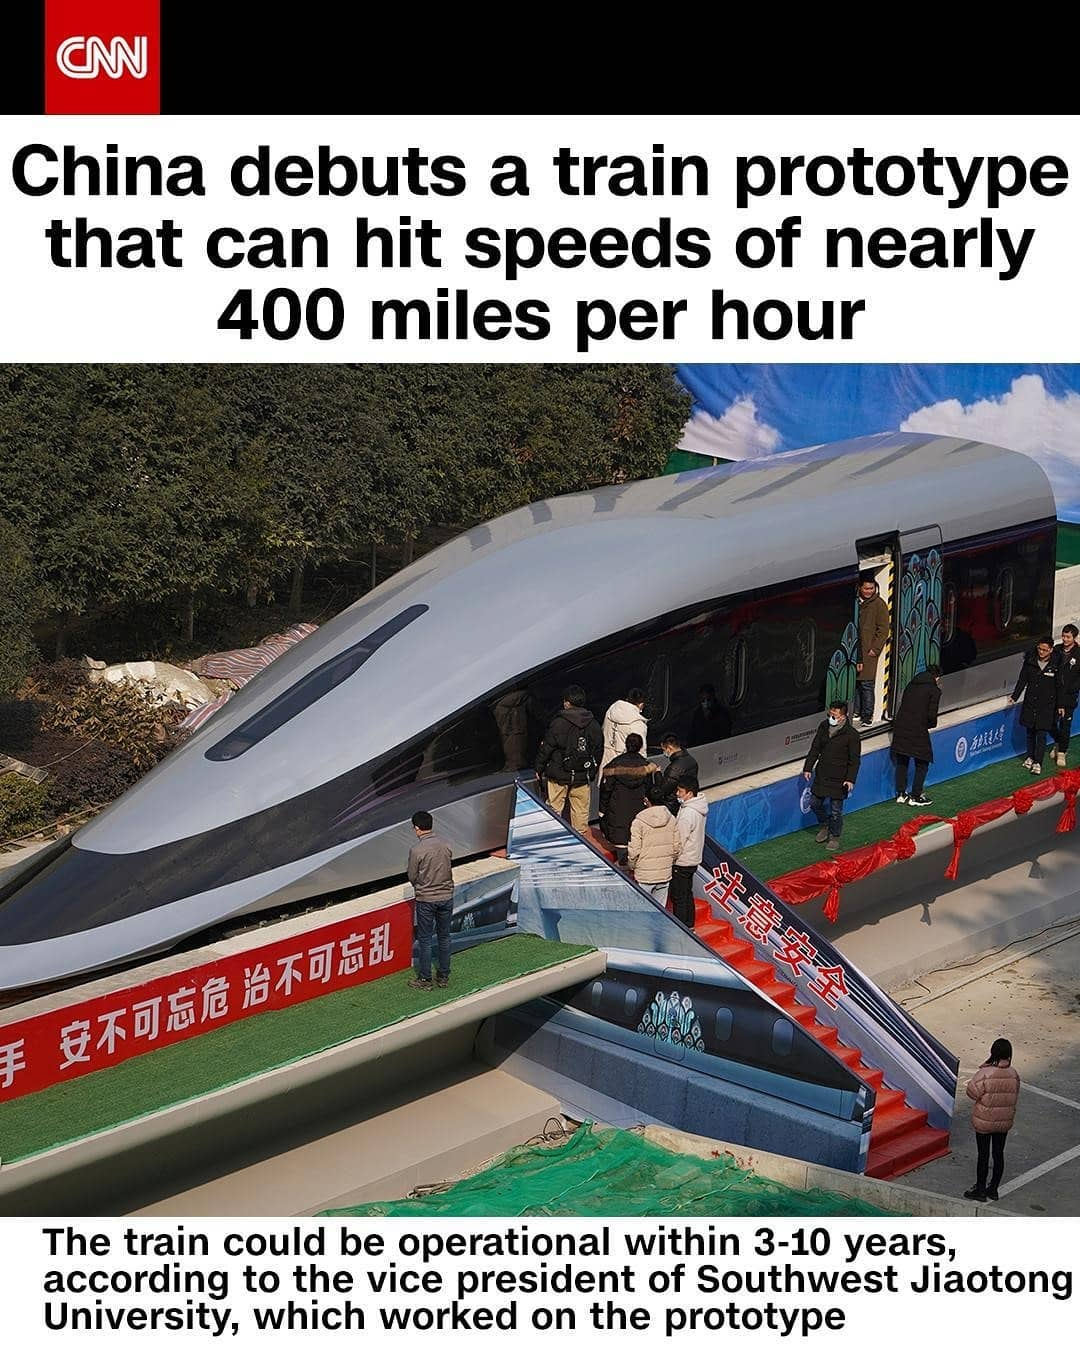 China has revealed a prototype for a new high-speed Maglev train that is capable of reaching nearly 385 miles per hour. The train could be operational within 3-10 years, according to Professor He Chuan, vice president of Southwest Jiaotong University, which worked on the prototype. It runs on high-temperature superconducting power that makes it appear as if the train is floating over magnetized tracks. The country's first high-speed Maglev train, which began operating in 2003, runs at around 250 mph.  